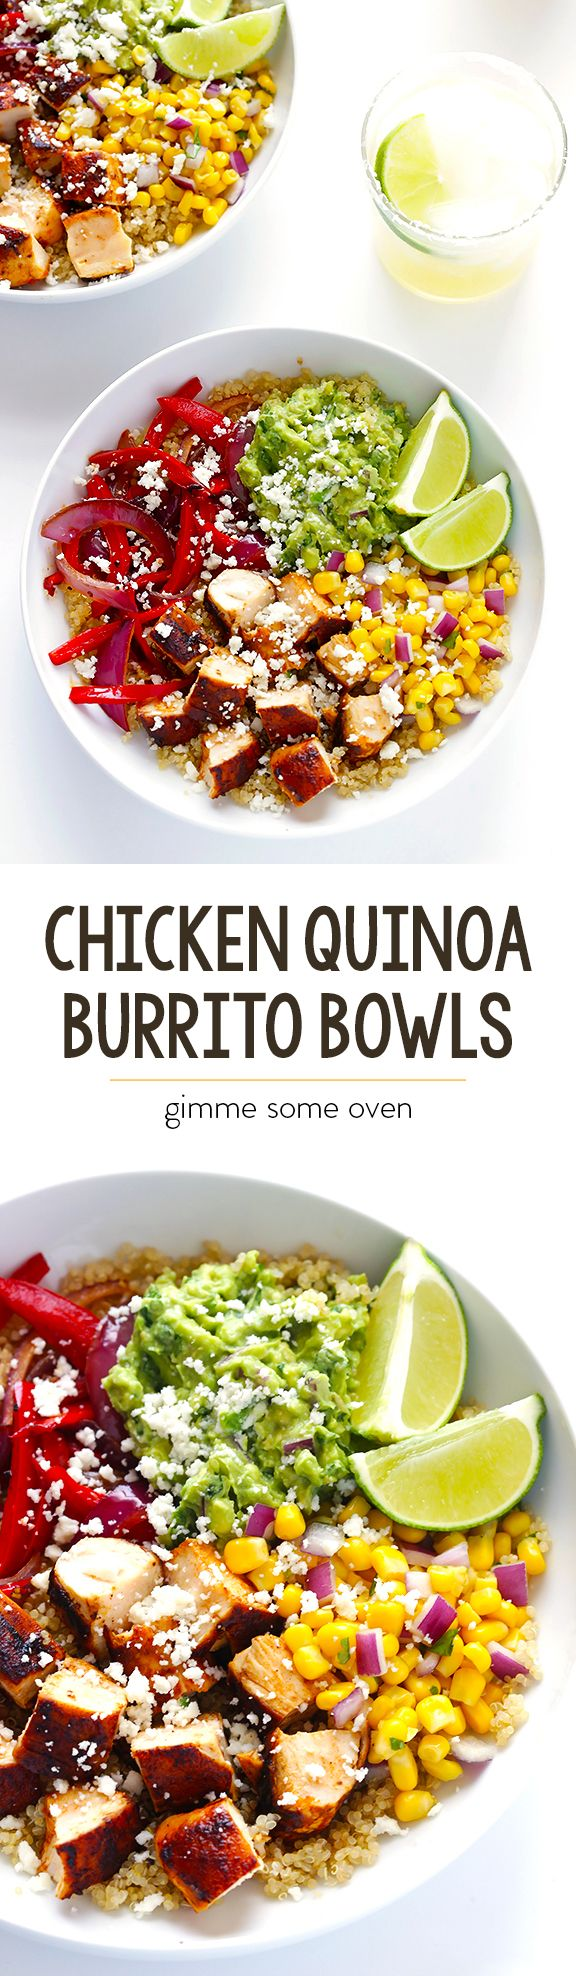 Chicken Quinoa Burrito Bowls -- easy to make,  naturally gluten-free, and arguably even more delicious than restaurant-style! | gimmesomeoven.com